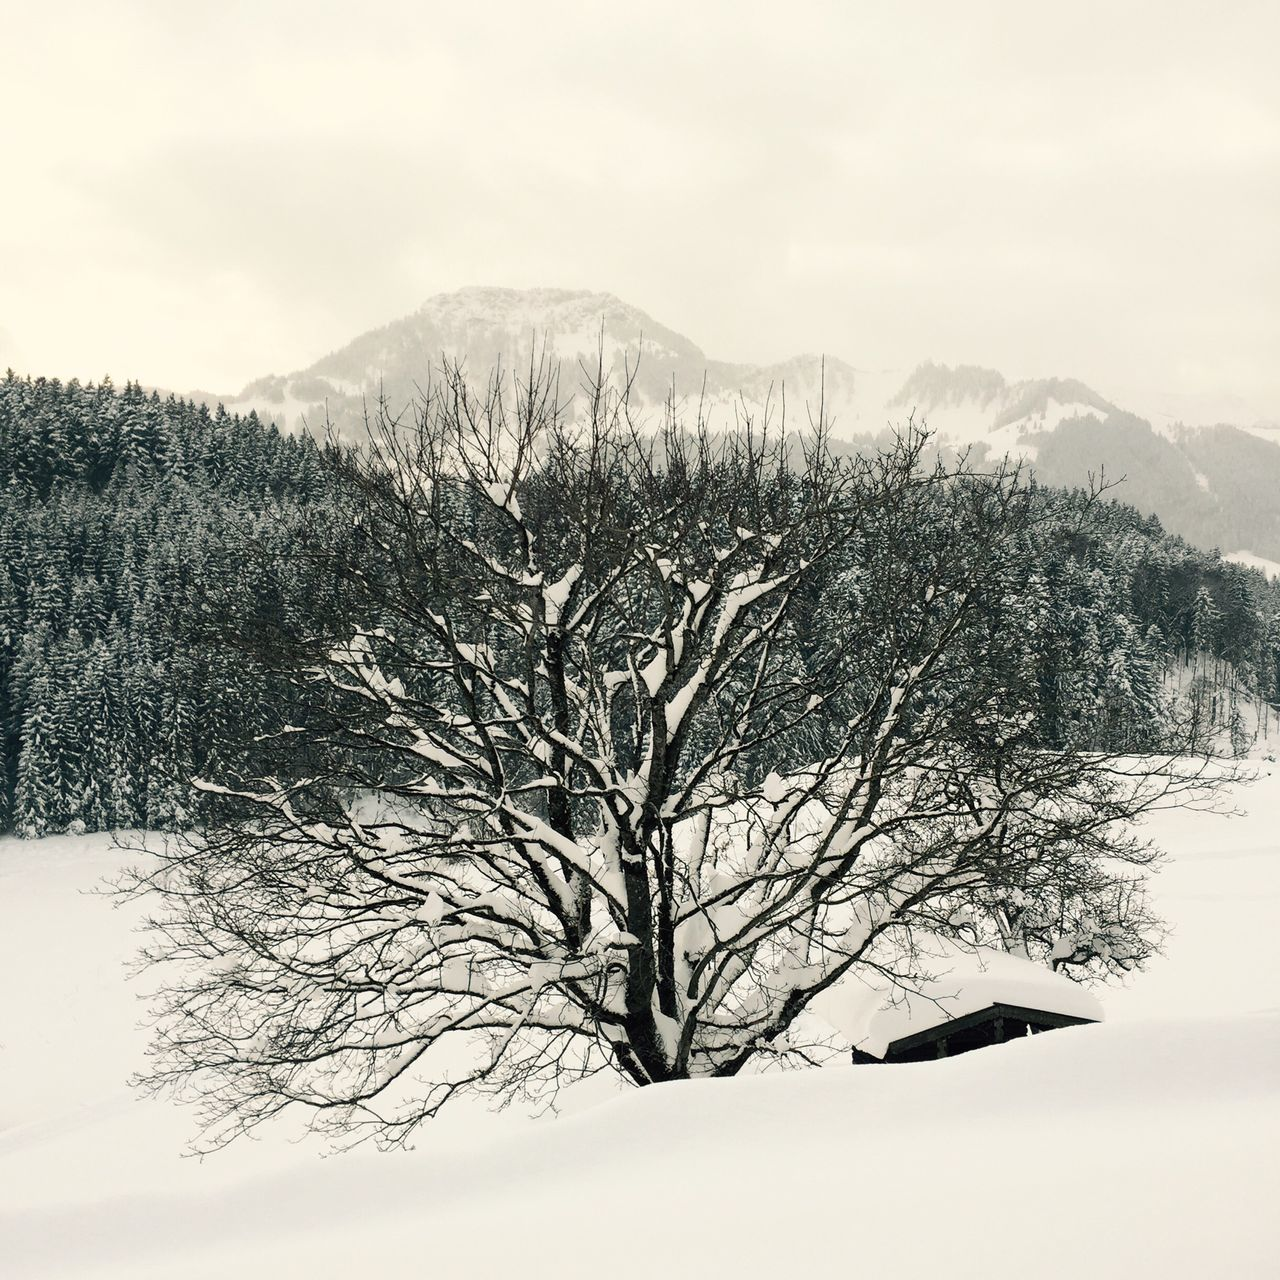 beauty in nature, winter, tranquility, nature, snow, cold temperature, tree, scenics, tranquil scene, mountain, sky, landscape, outdoors, no people, day, bare tree, branch